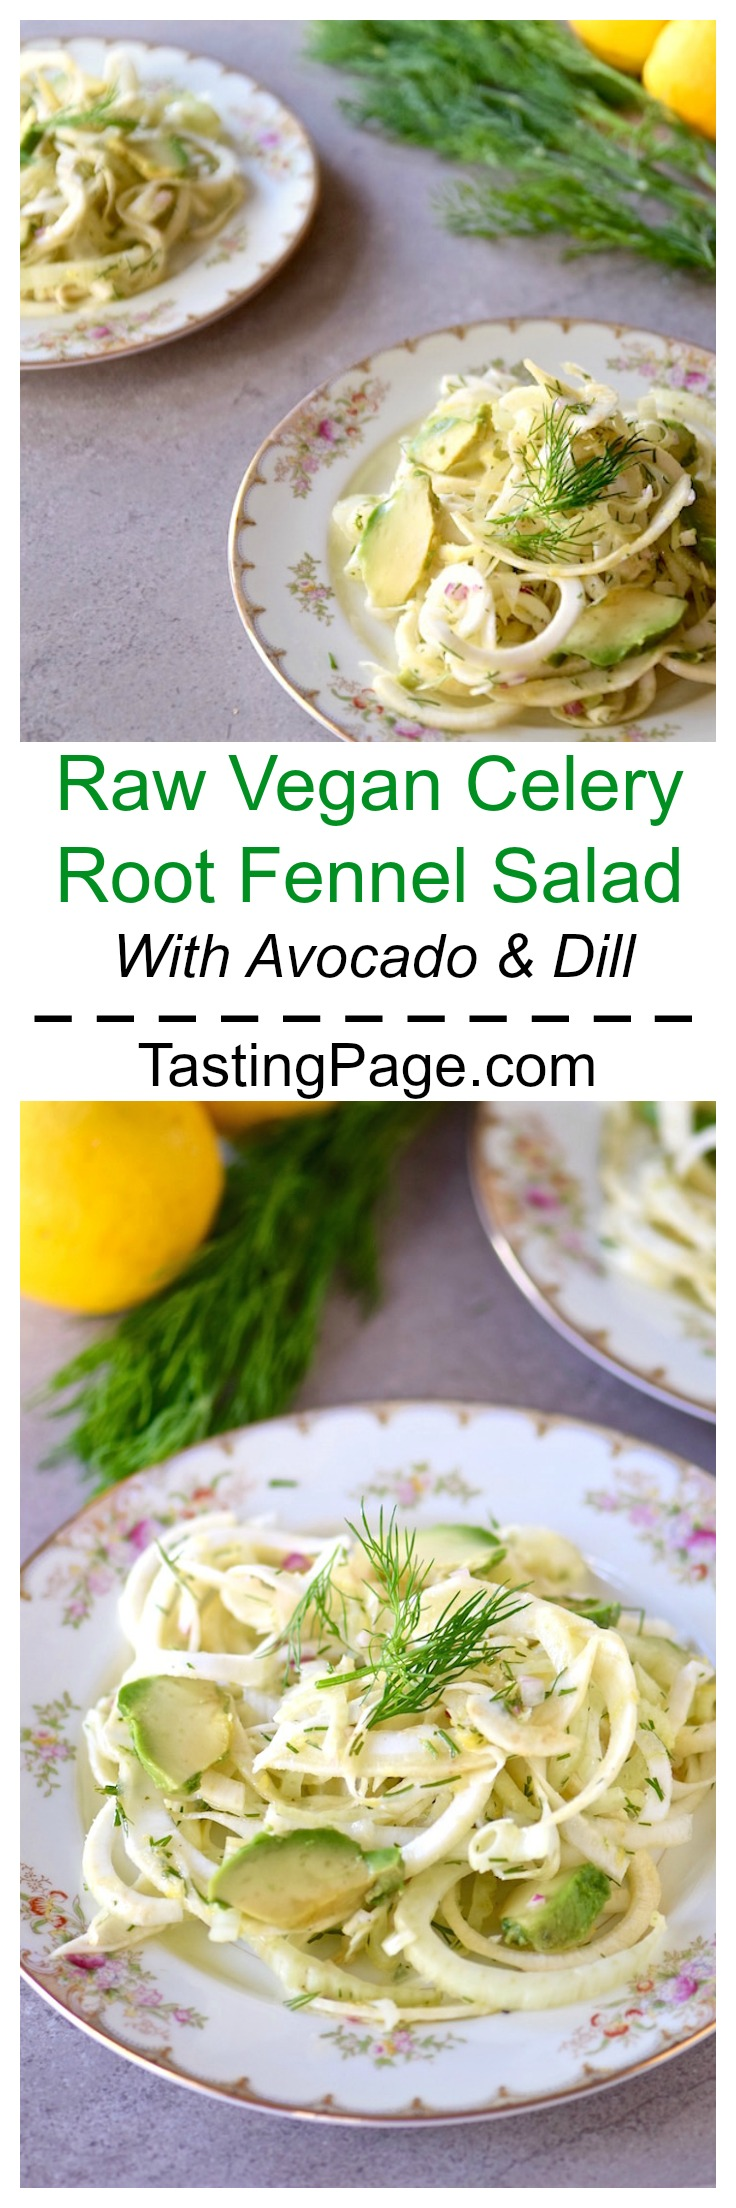 Raw Vegan Celery Root Fennel Salad with Dill and Avocado | TastingPage.com